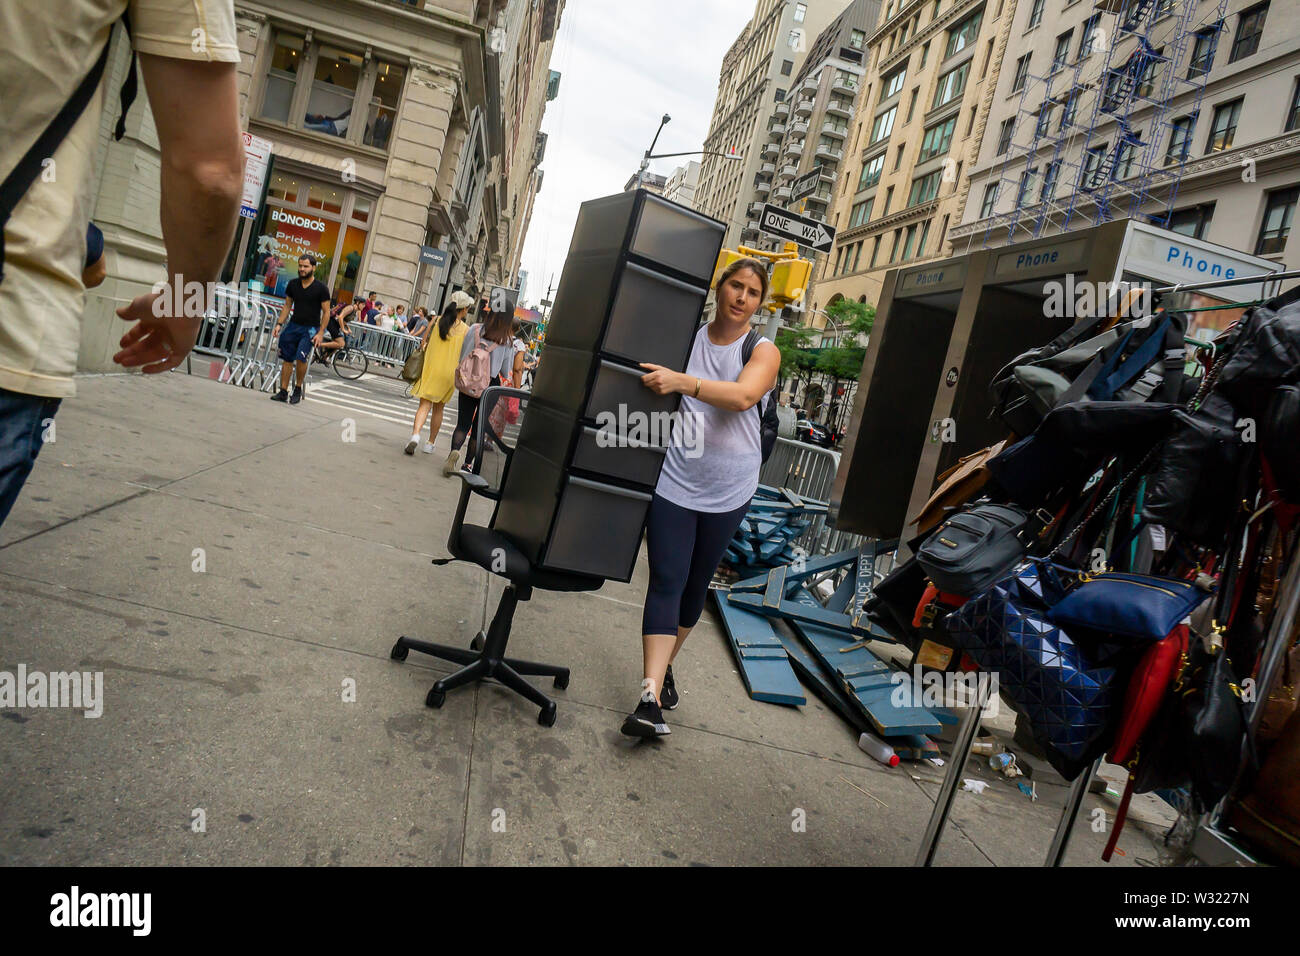 A woman schleps a storage unit on an office chair as a makeshift dolly in the Flatiron neighborhood of New York on Tuesday, July 2, 2019. (© Richard B. Levine) - Stock Image